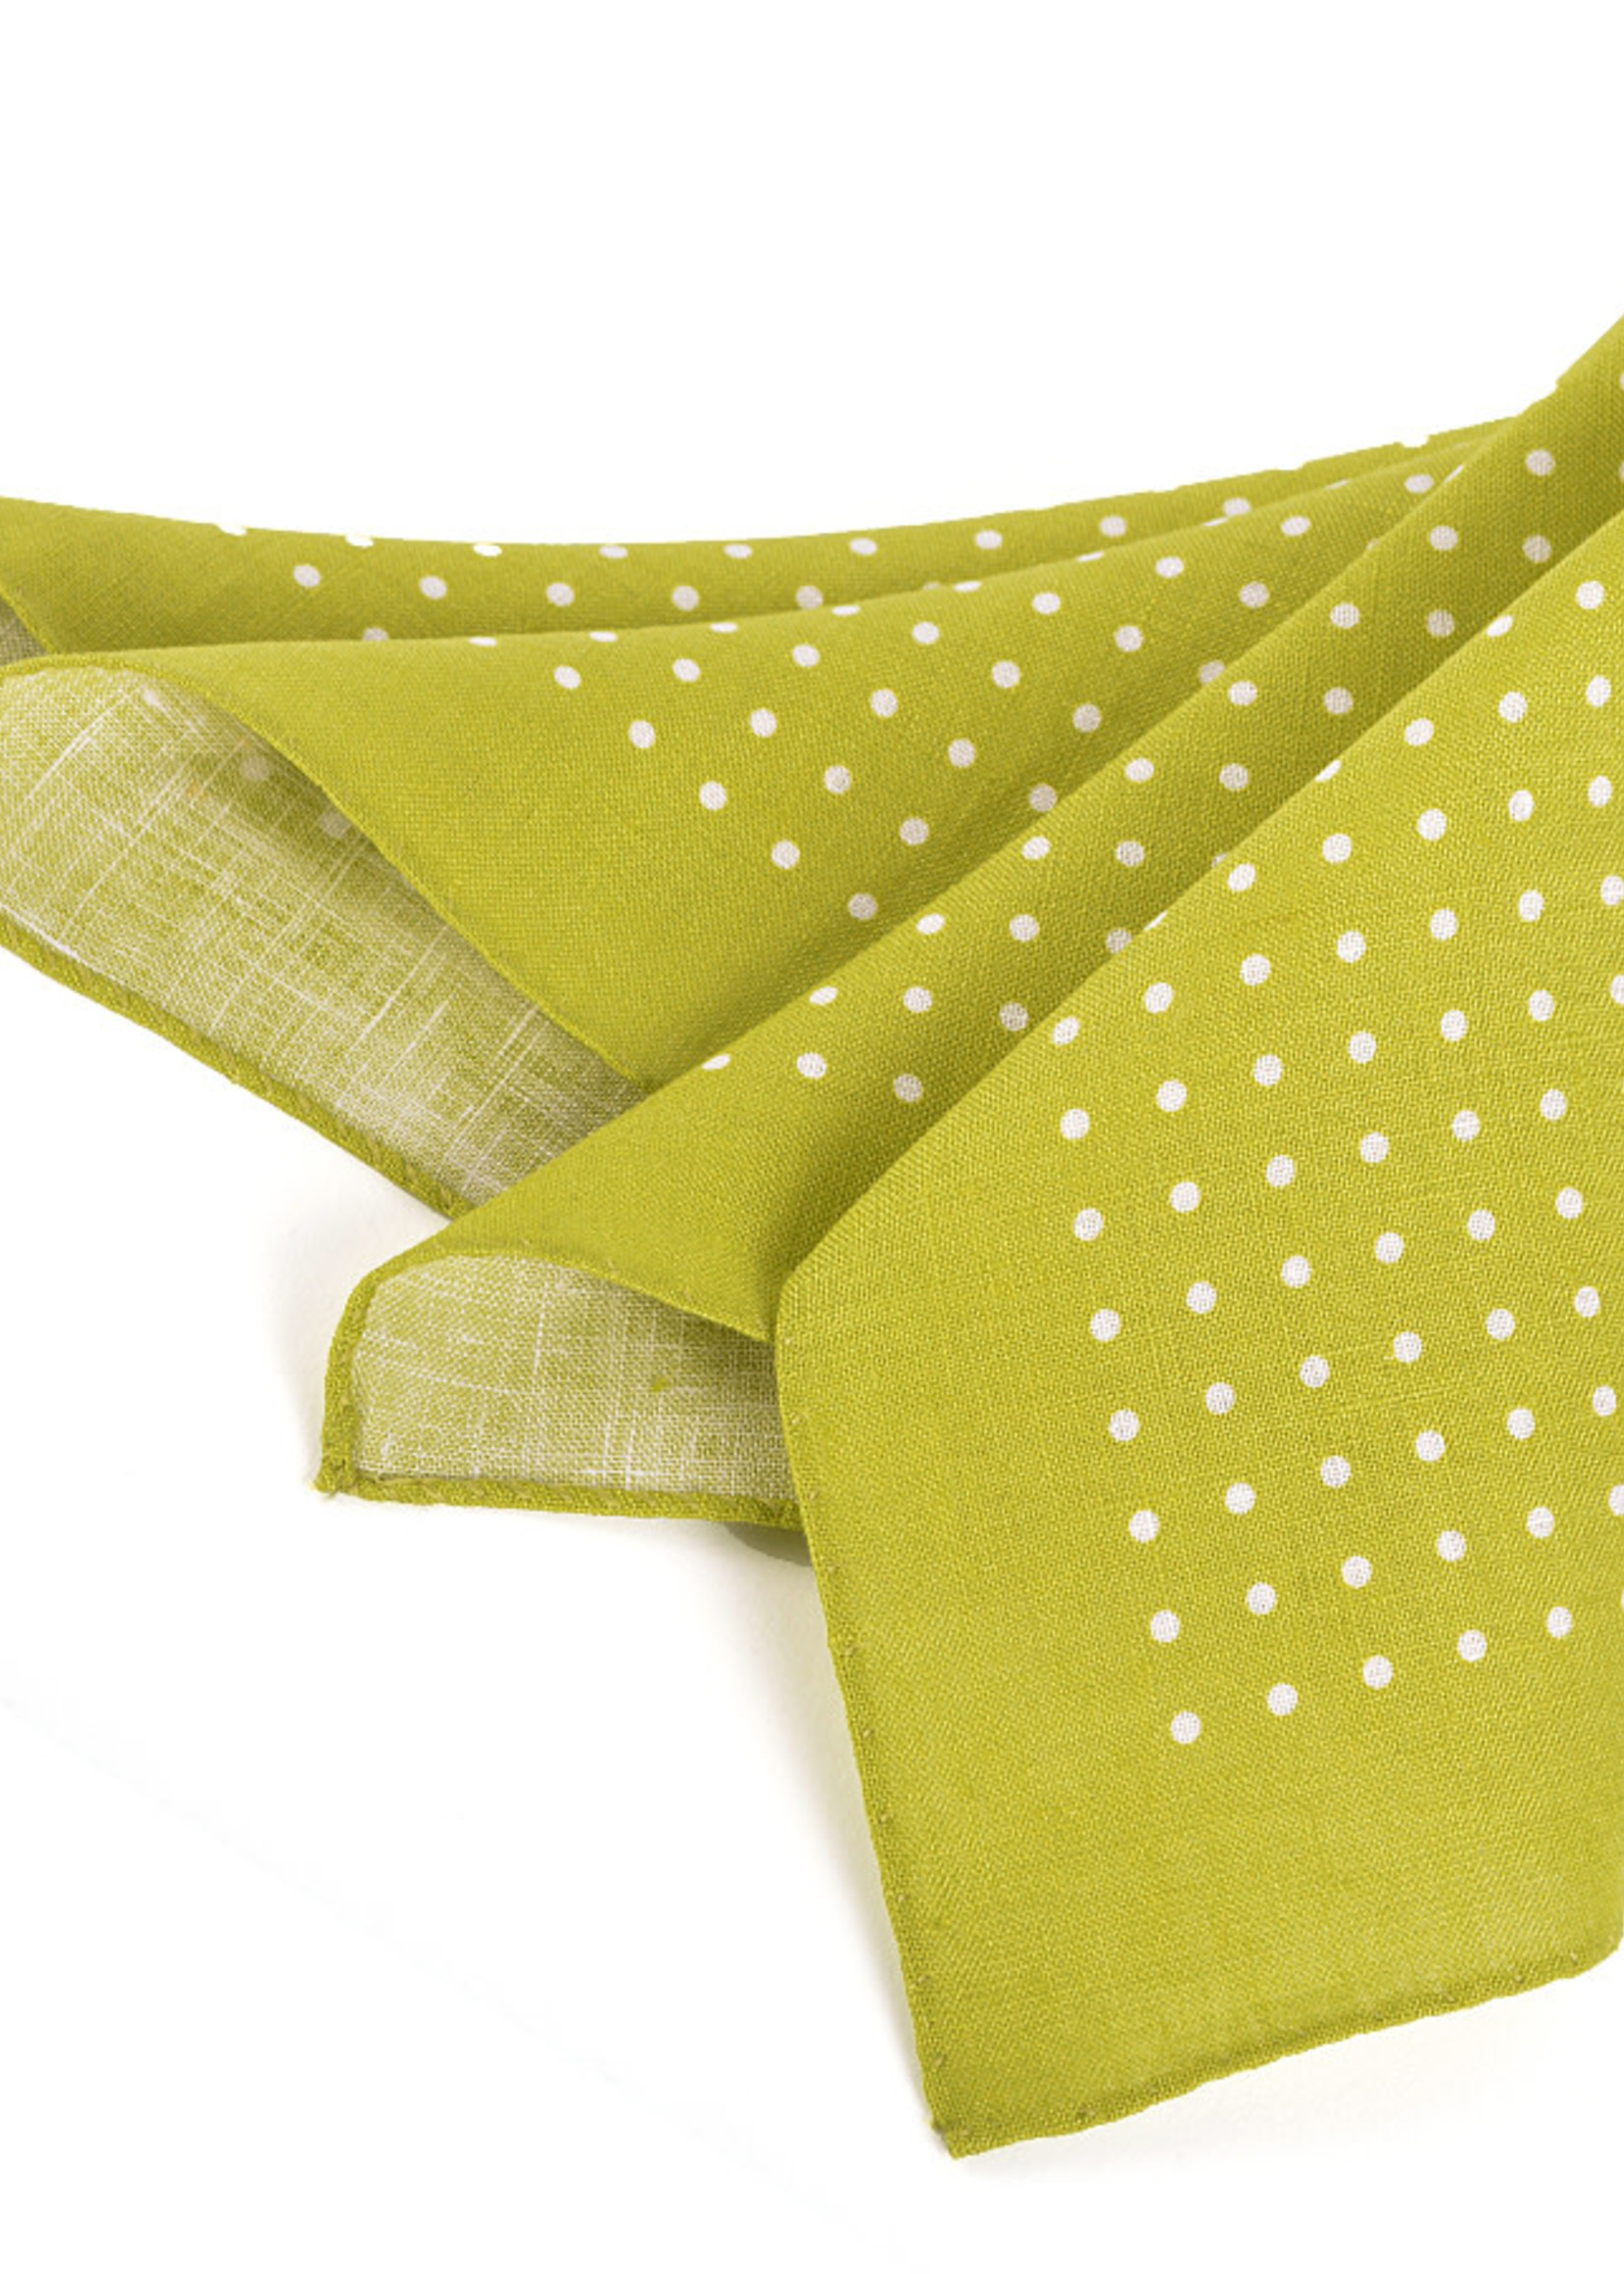 Dion Polka Dot Linen Pocket Square Green by Dion